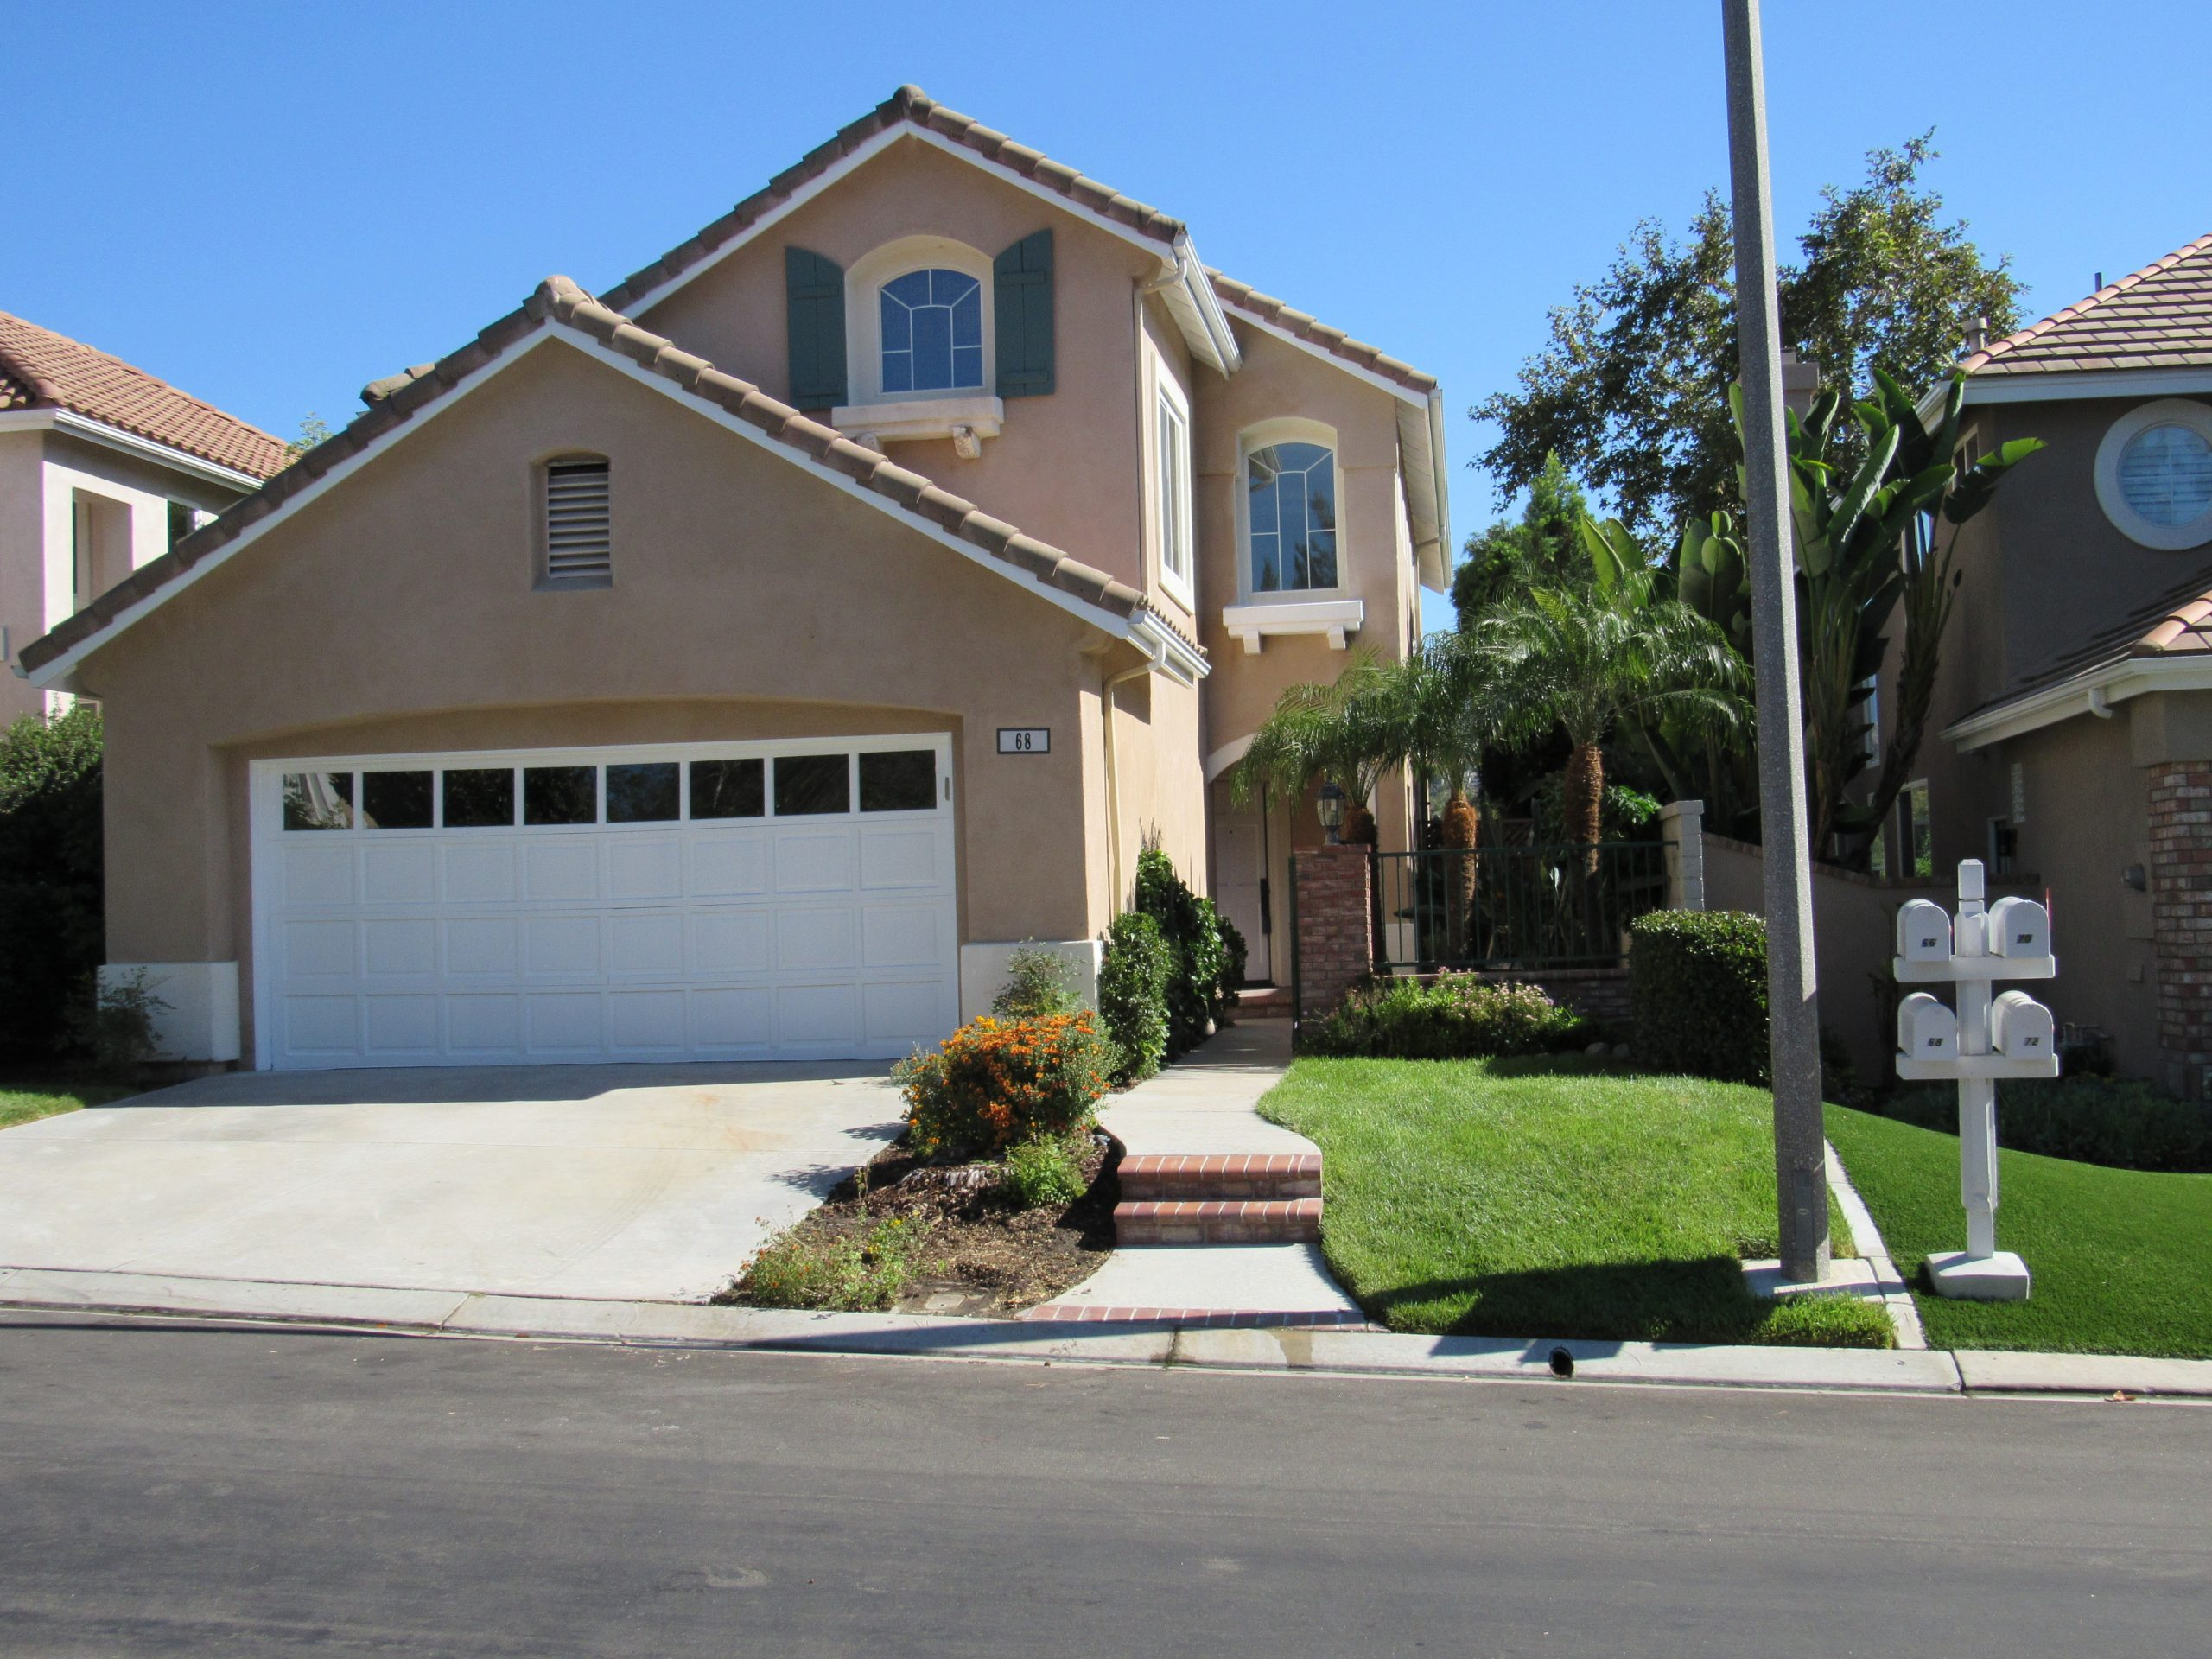 Foreclosed Homes In Orange County (949)610-5720